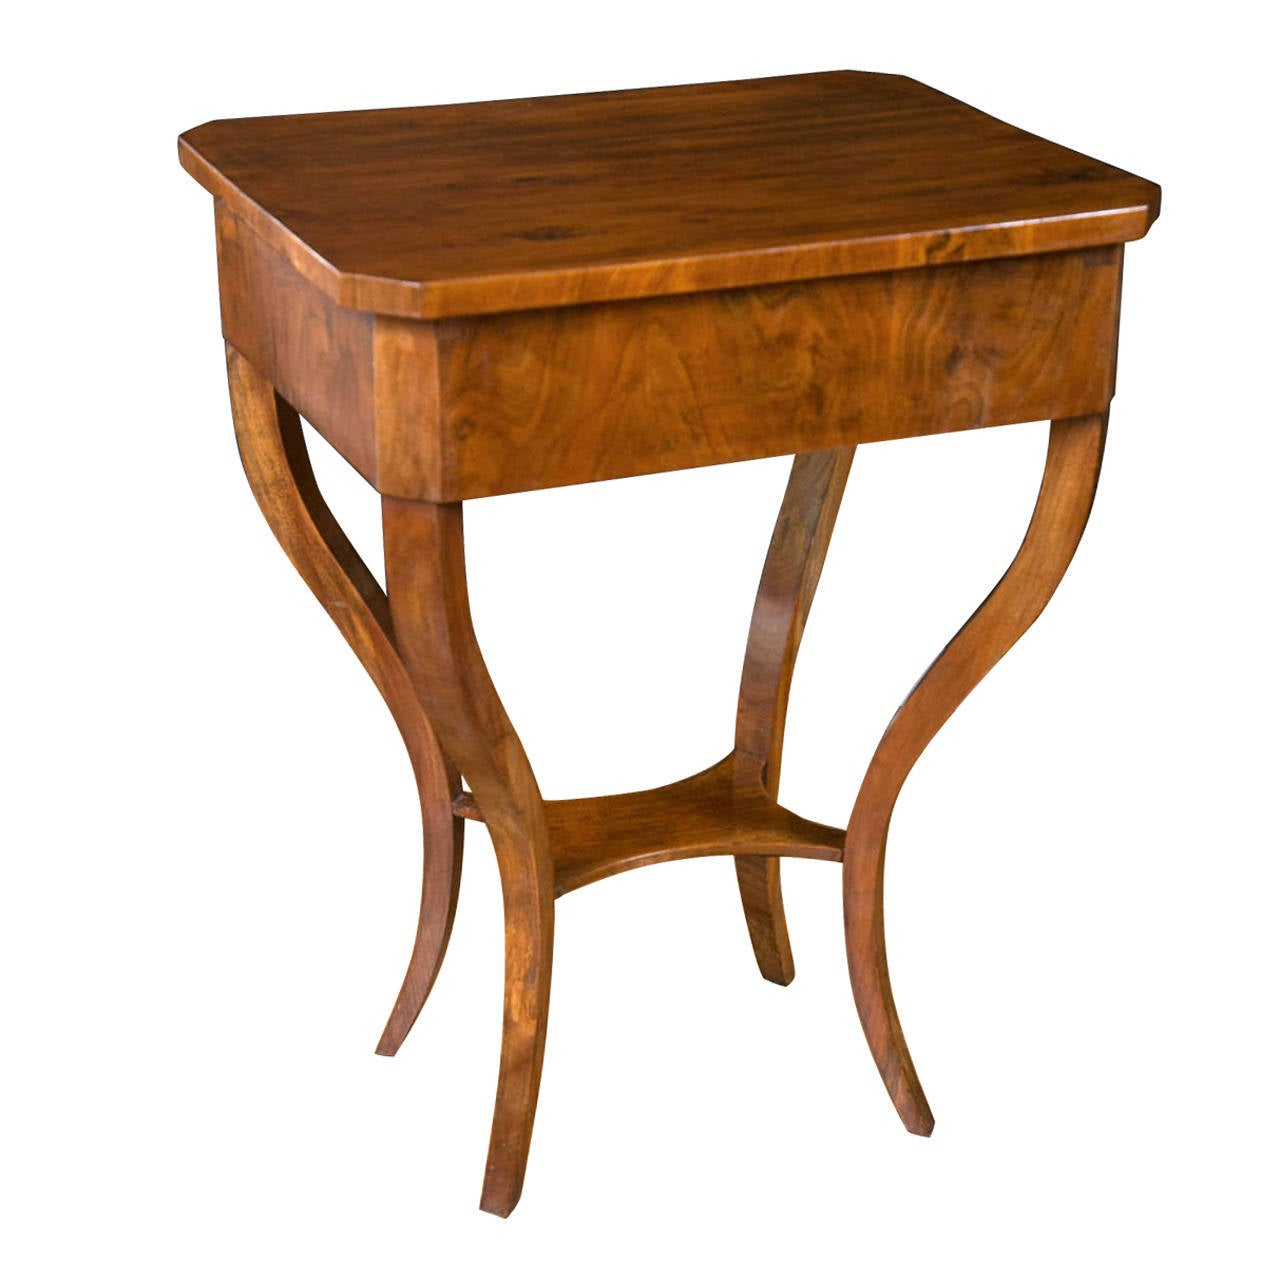 Captivating Early Biedermeier Table For Sale